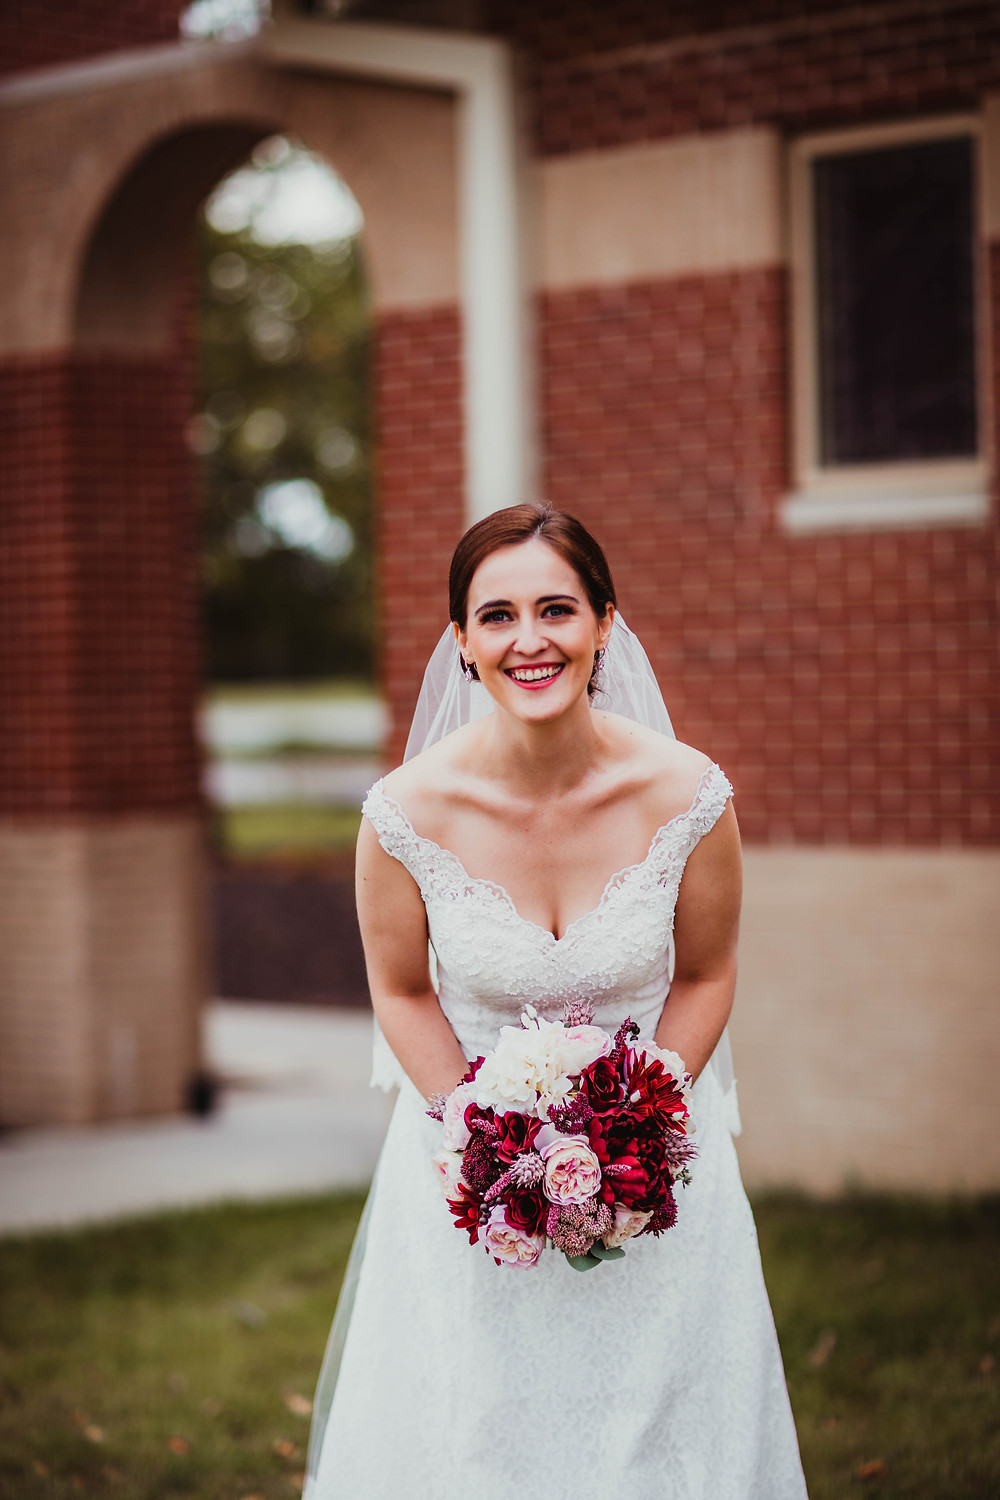 Indy Catholic Wedding, bride in lace wedding dress